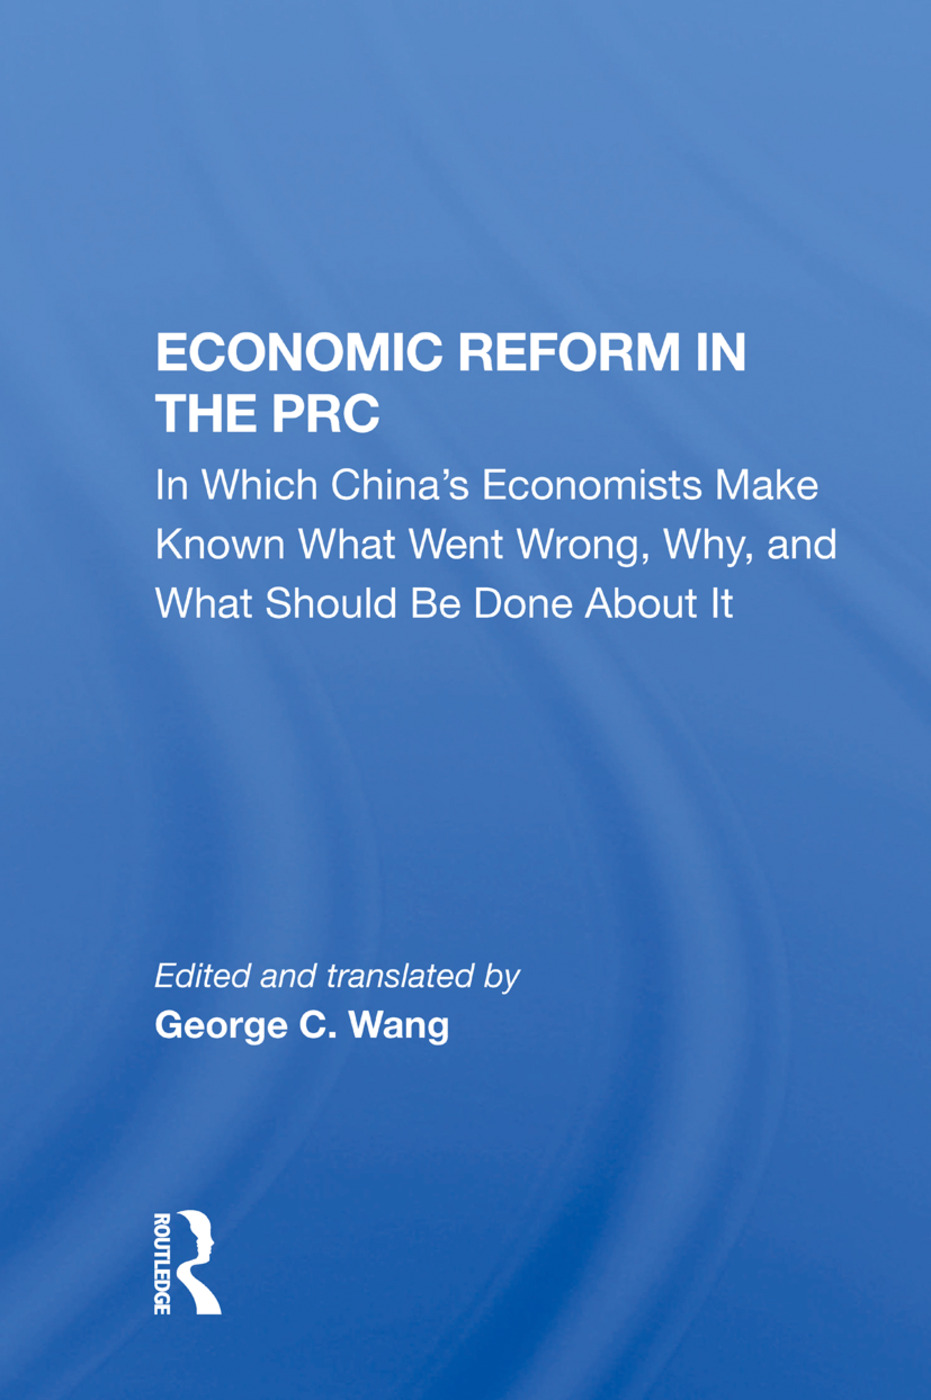 Economic Reform In The Prc: In Which China's Economists Make Known What Went Wrong, Why, And What Should Be Done About It book cover